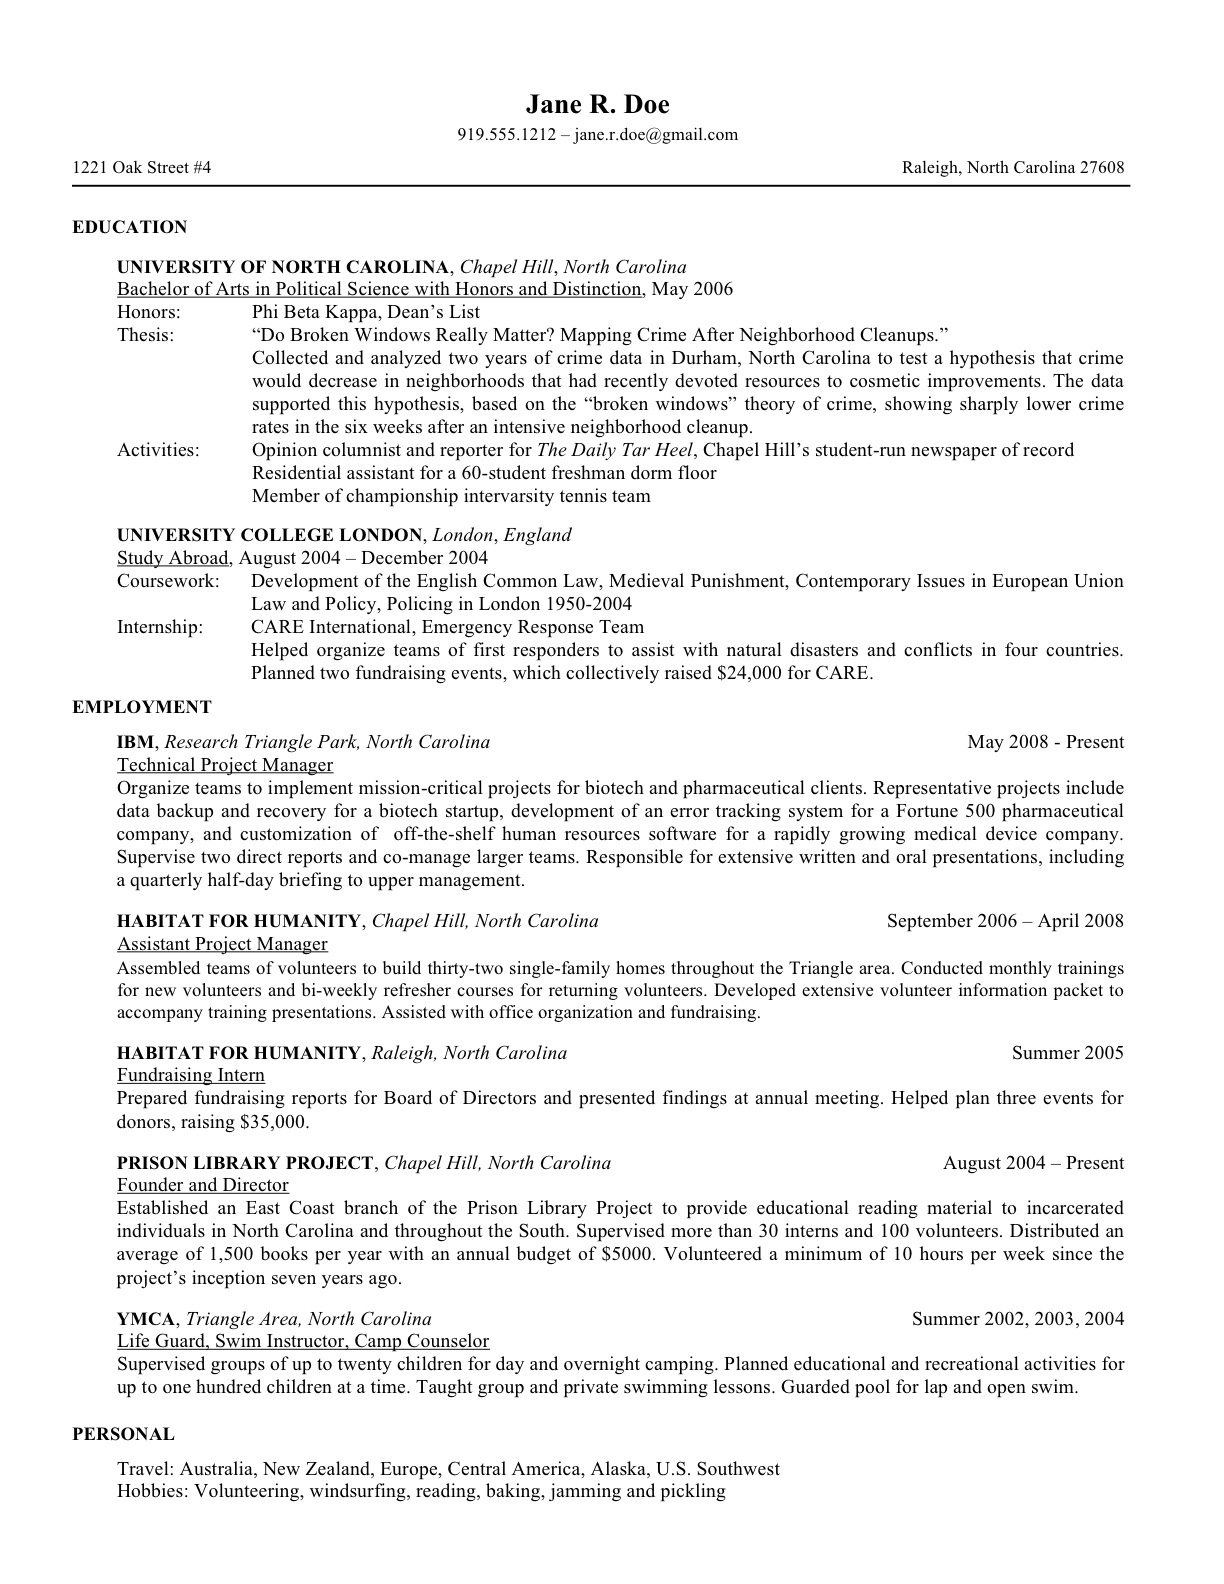 law school resume templates prepping your for of university at application template Resume Law School Application Resume Template